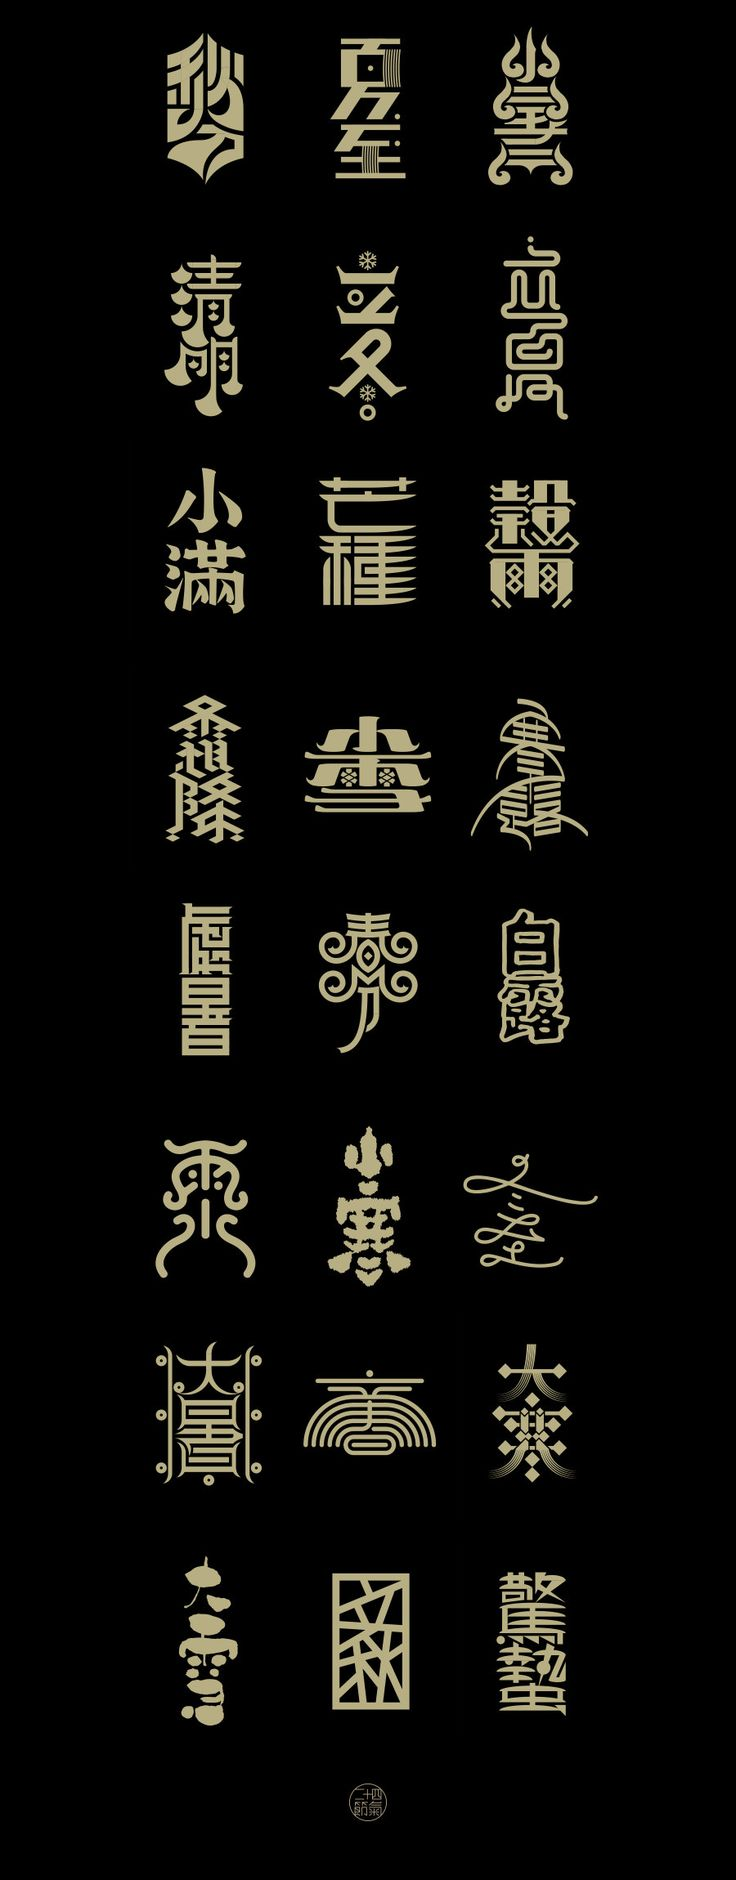 Chinese type design and Asian graphic layouts《二十四节气》-天宇版》